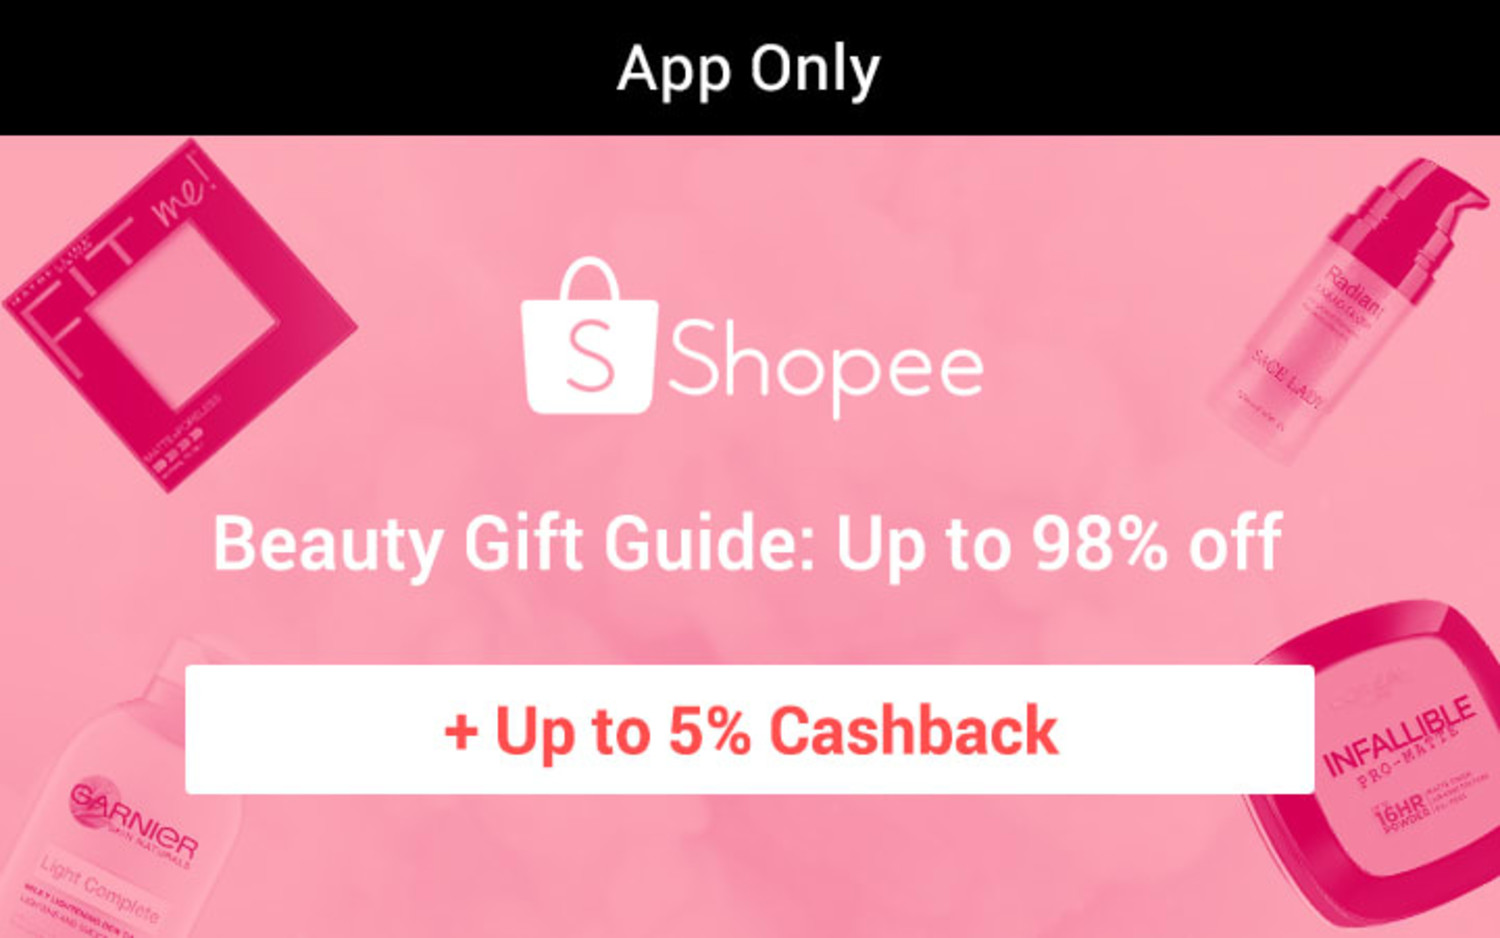 Shopee: Beauty Gift Guide: Up to 98% off + Up to 5% Cashback